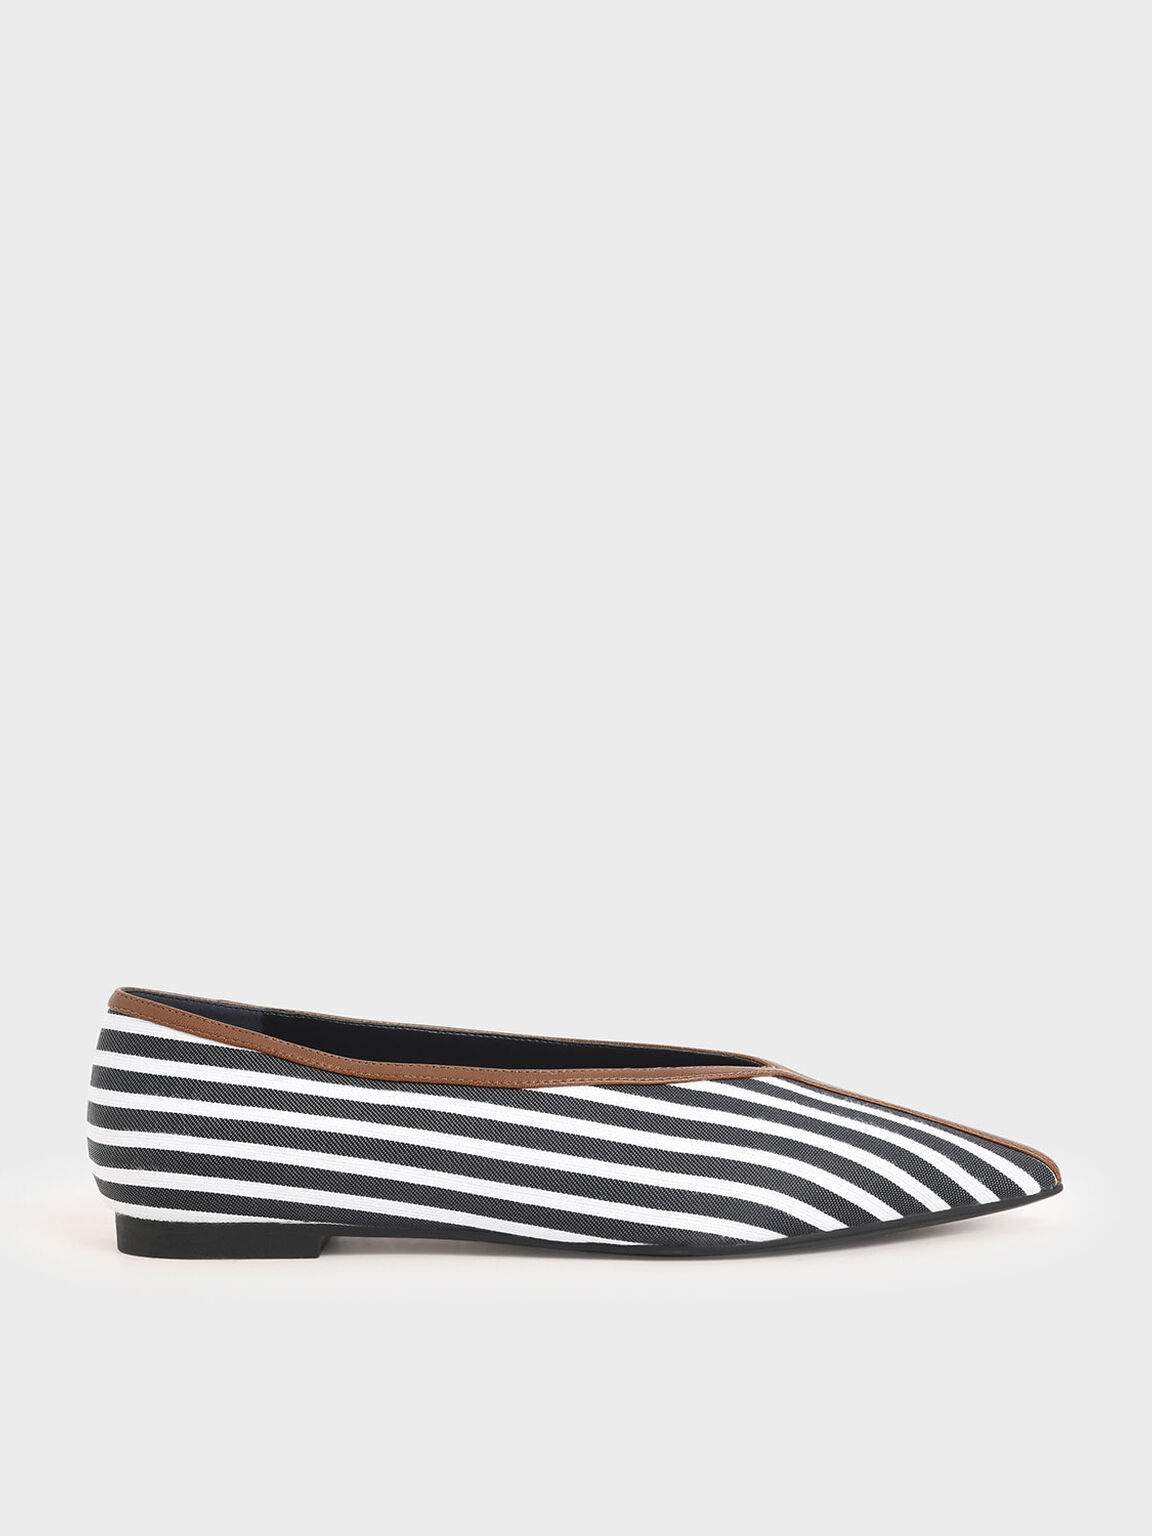 Jacquard Striped V-Cut Ballerina Flats, Dark Blue, hi-res